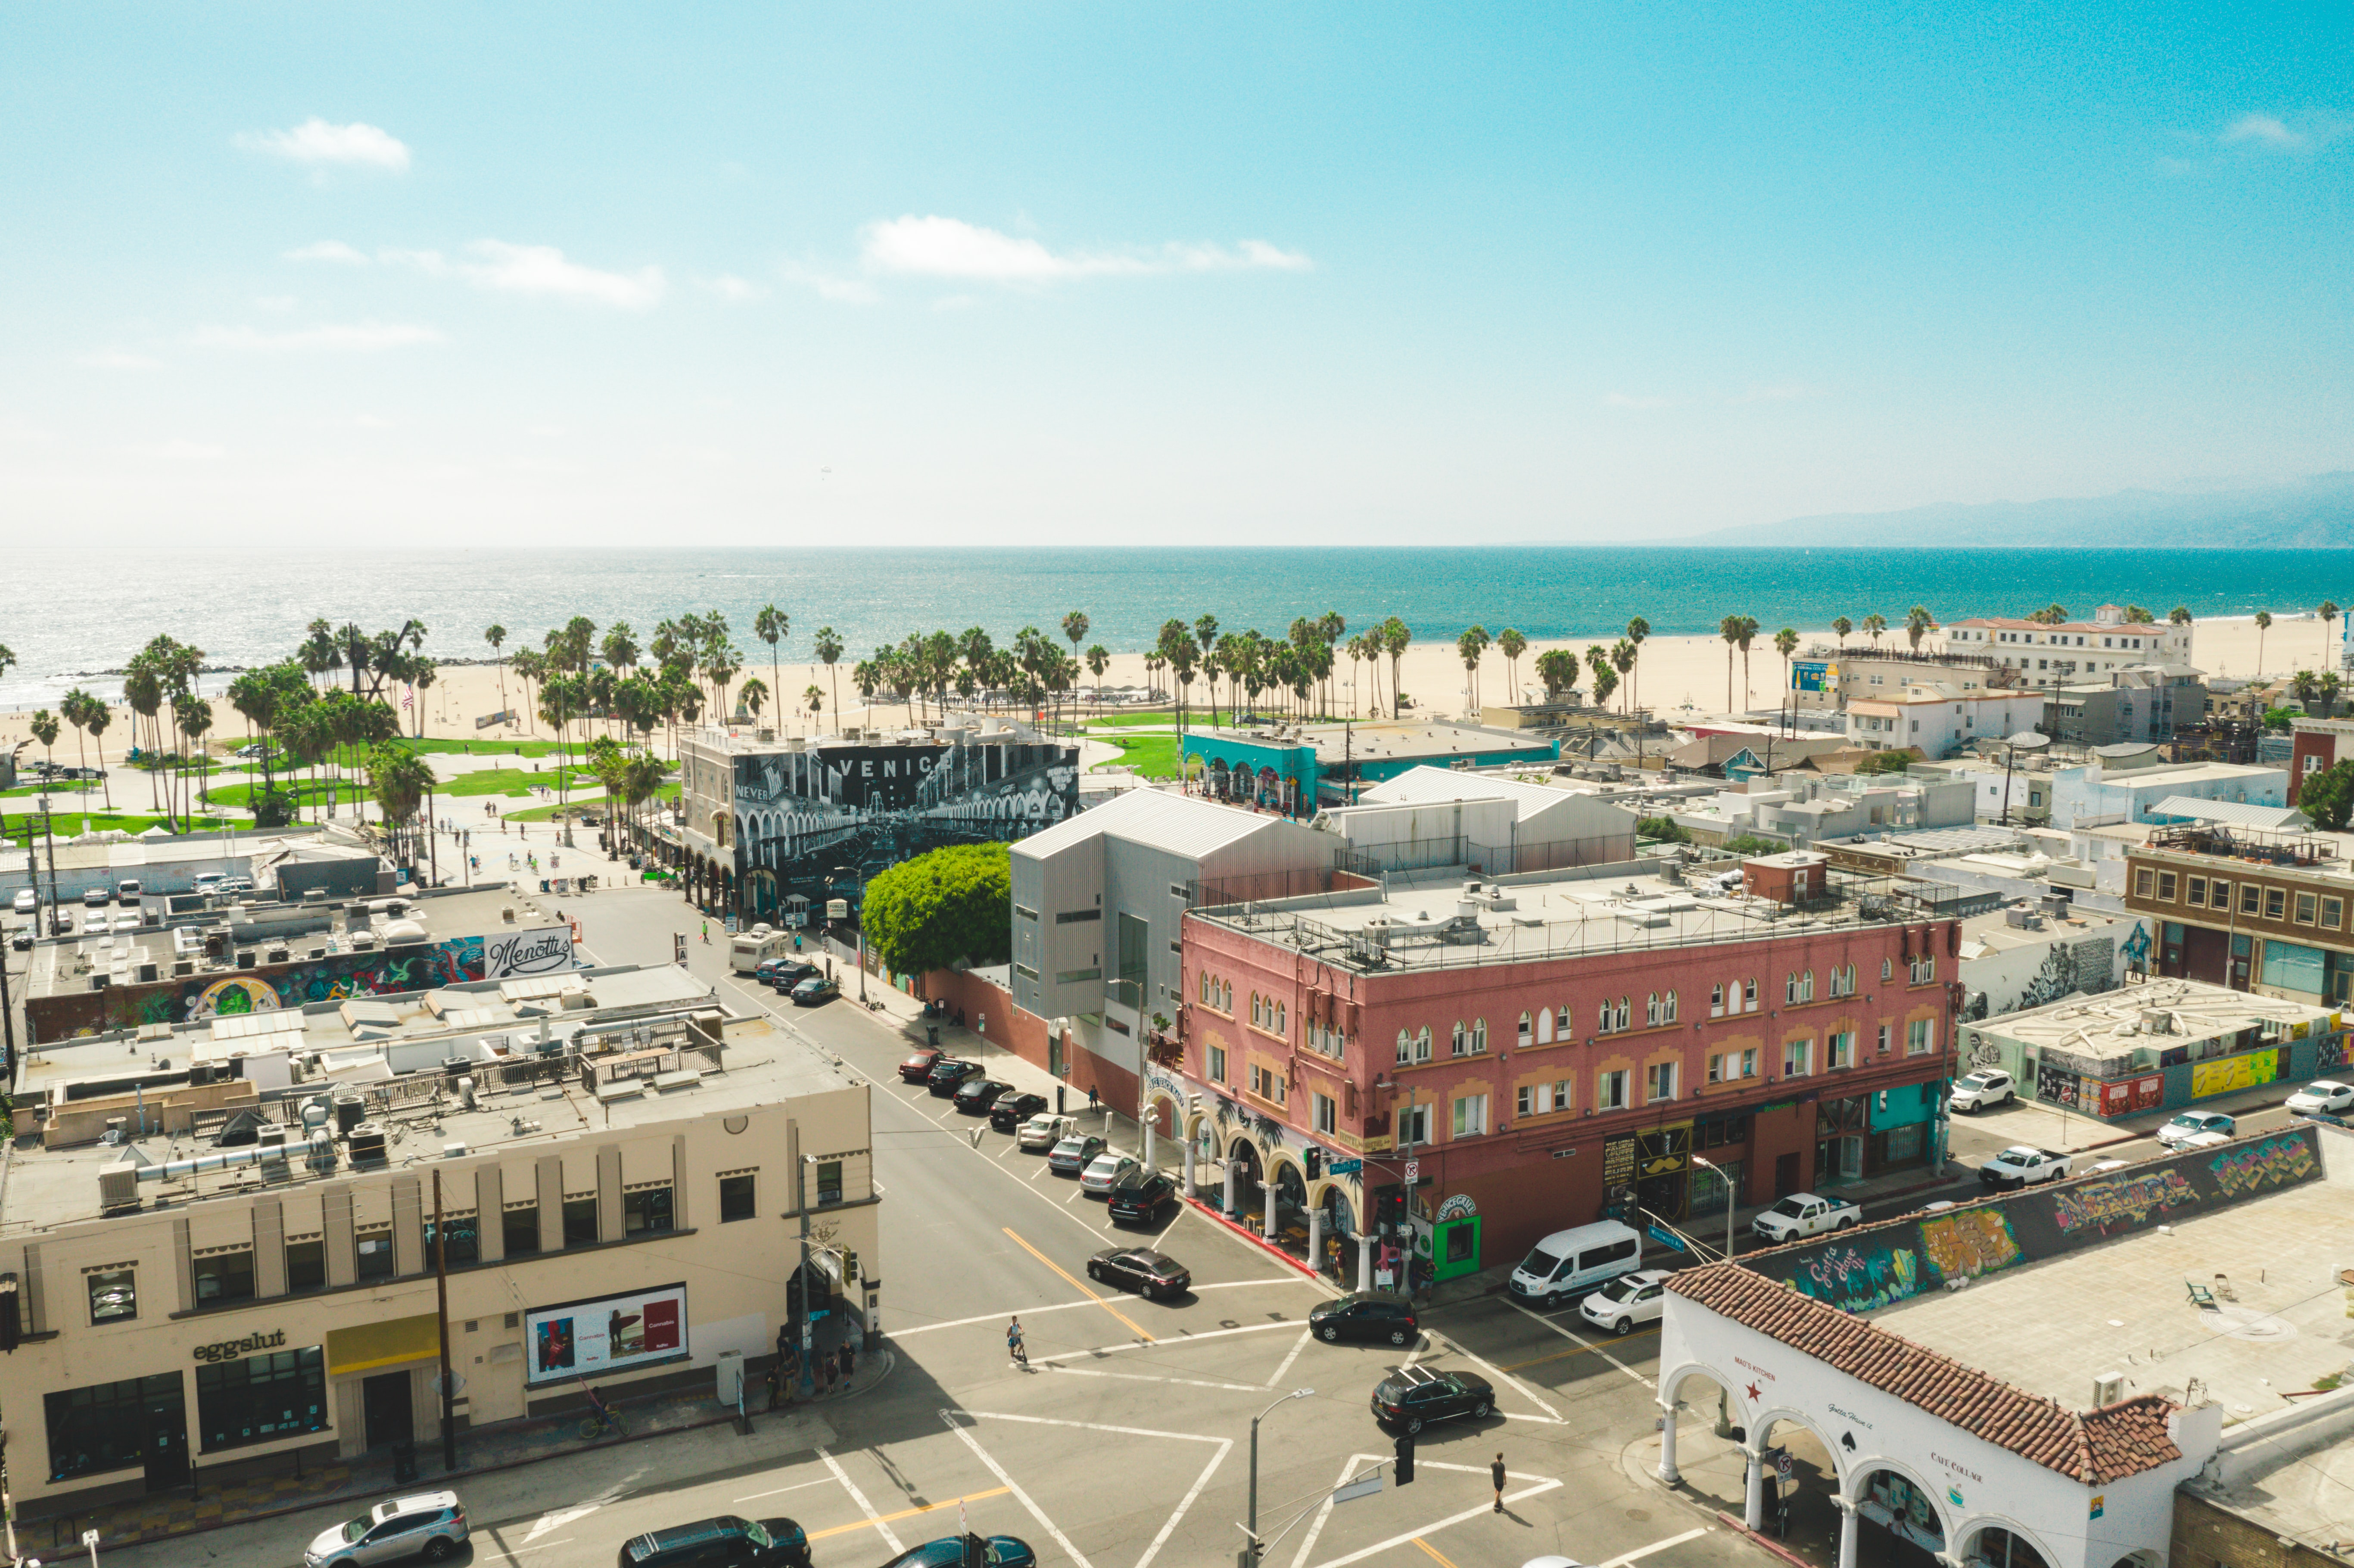 Aerial view of Venice, California, shows buildings in front of a palm tree–lined beach.